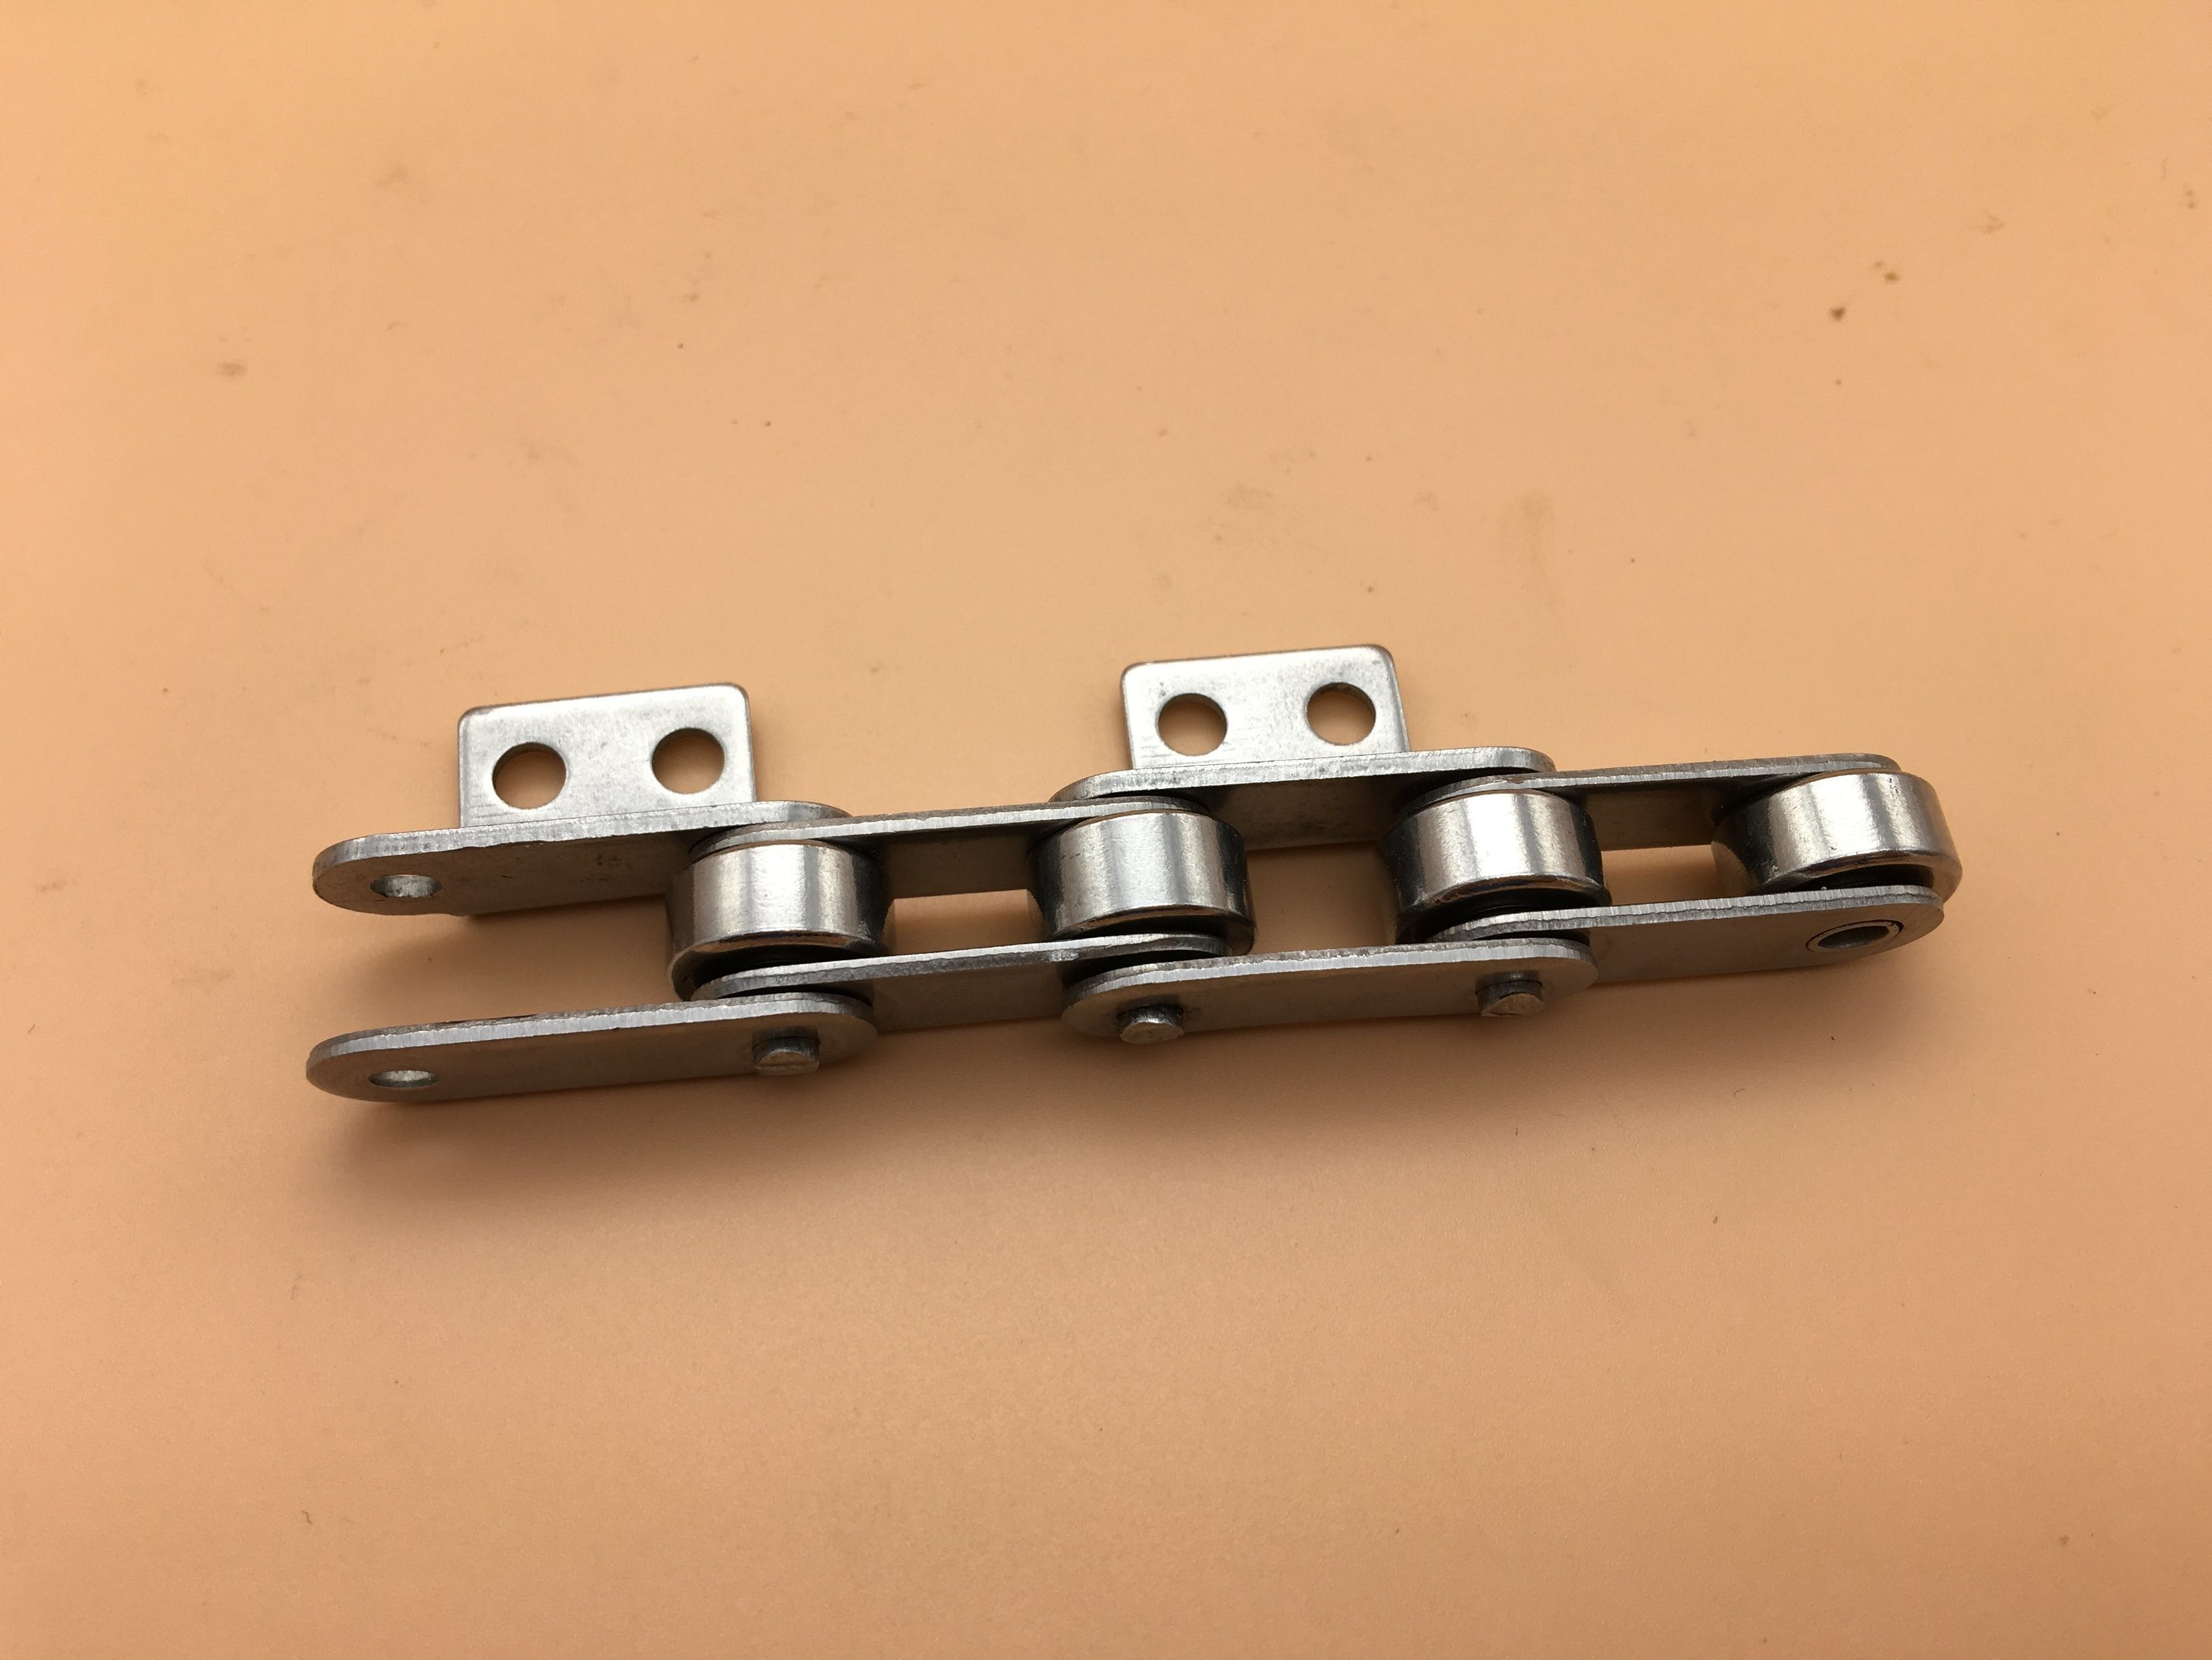 Stainless Steel Conveyor Chain C2040ss with Attachment a-2